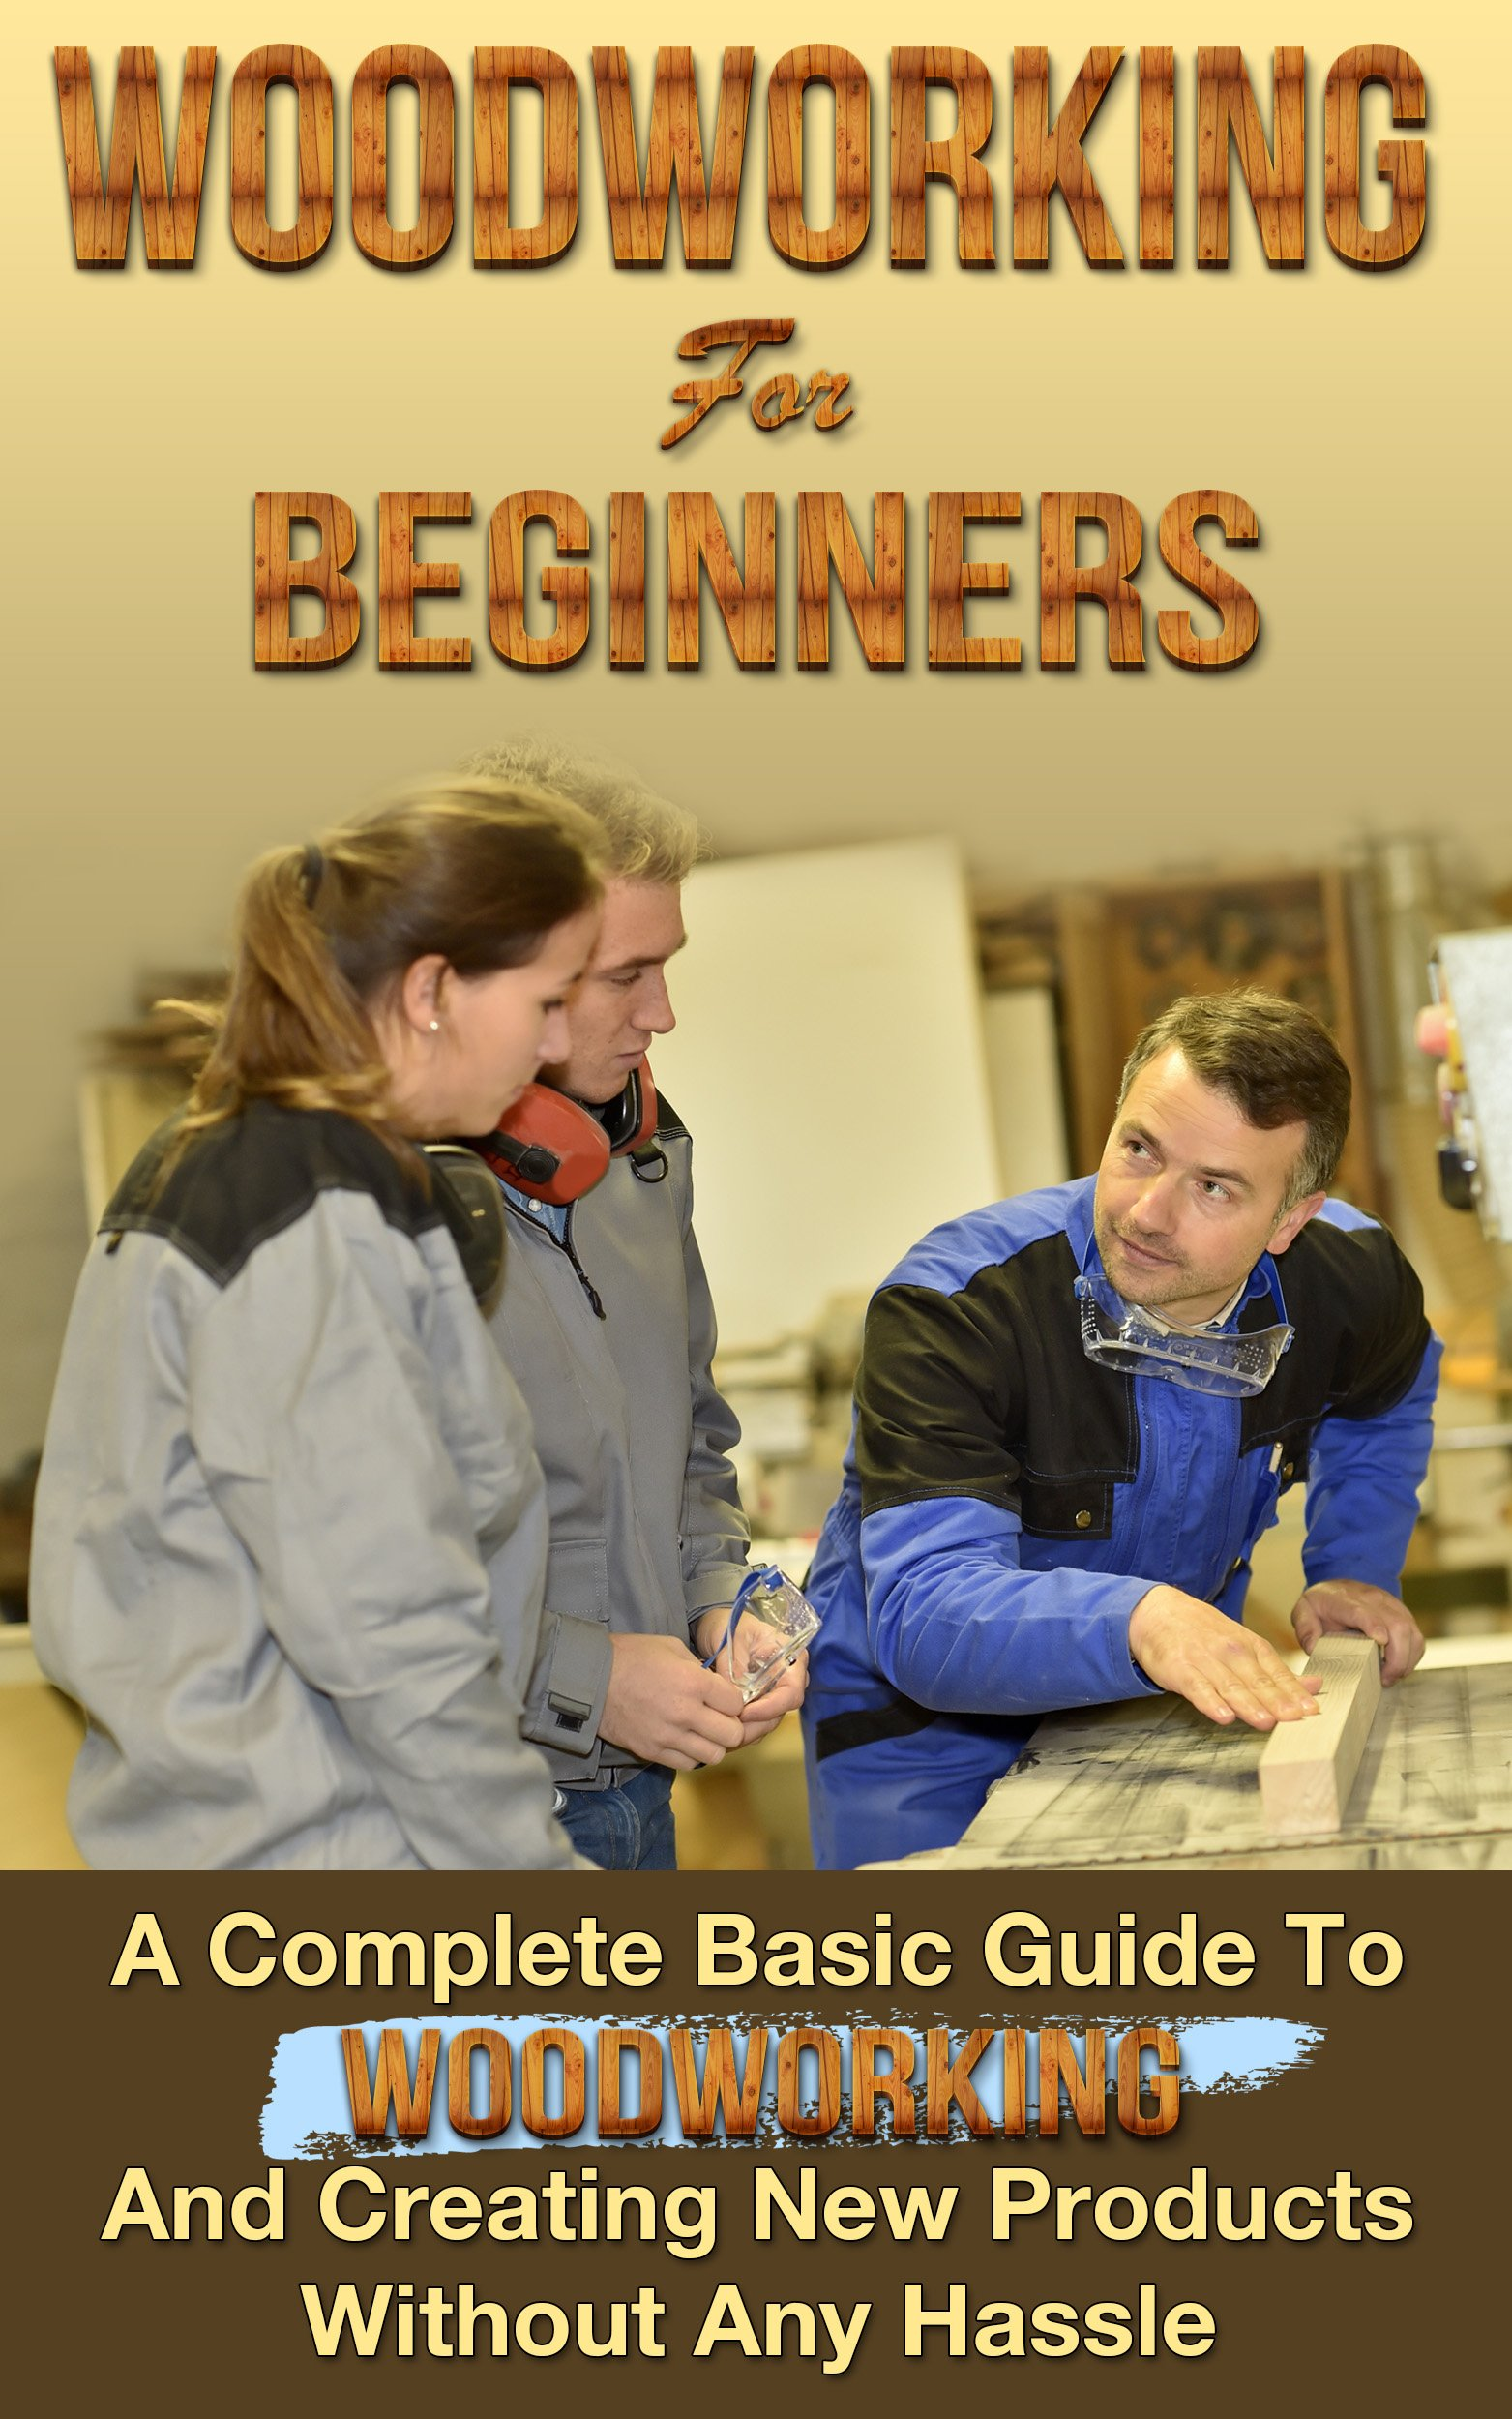 Woodworking  Woodworking For Beginners  A Complete Basic Guide To Woodworking And Creating New Products Without Any Hassle  Woodoworking Projects Woodworking Plans Book 1   English Edition